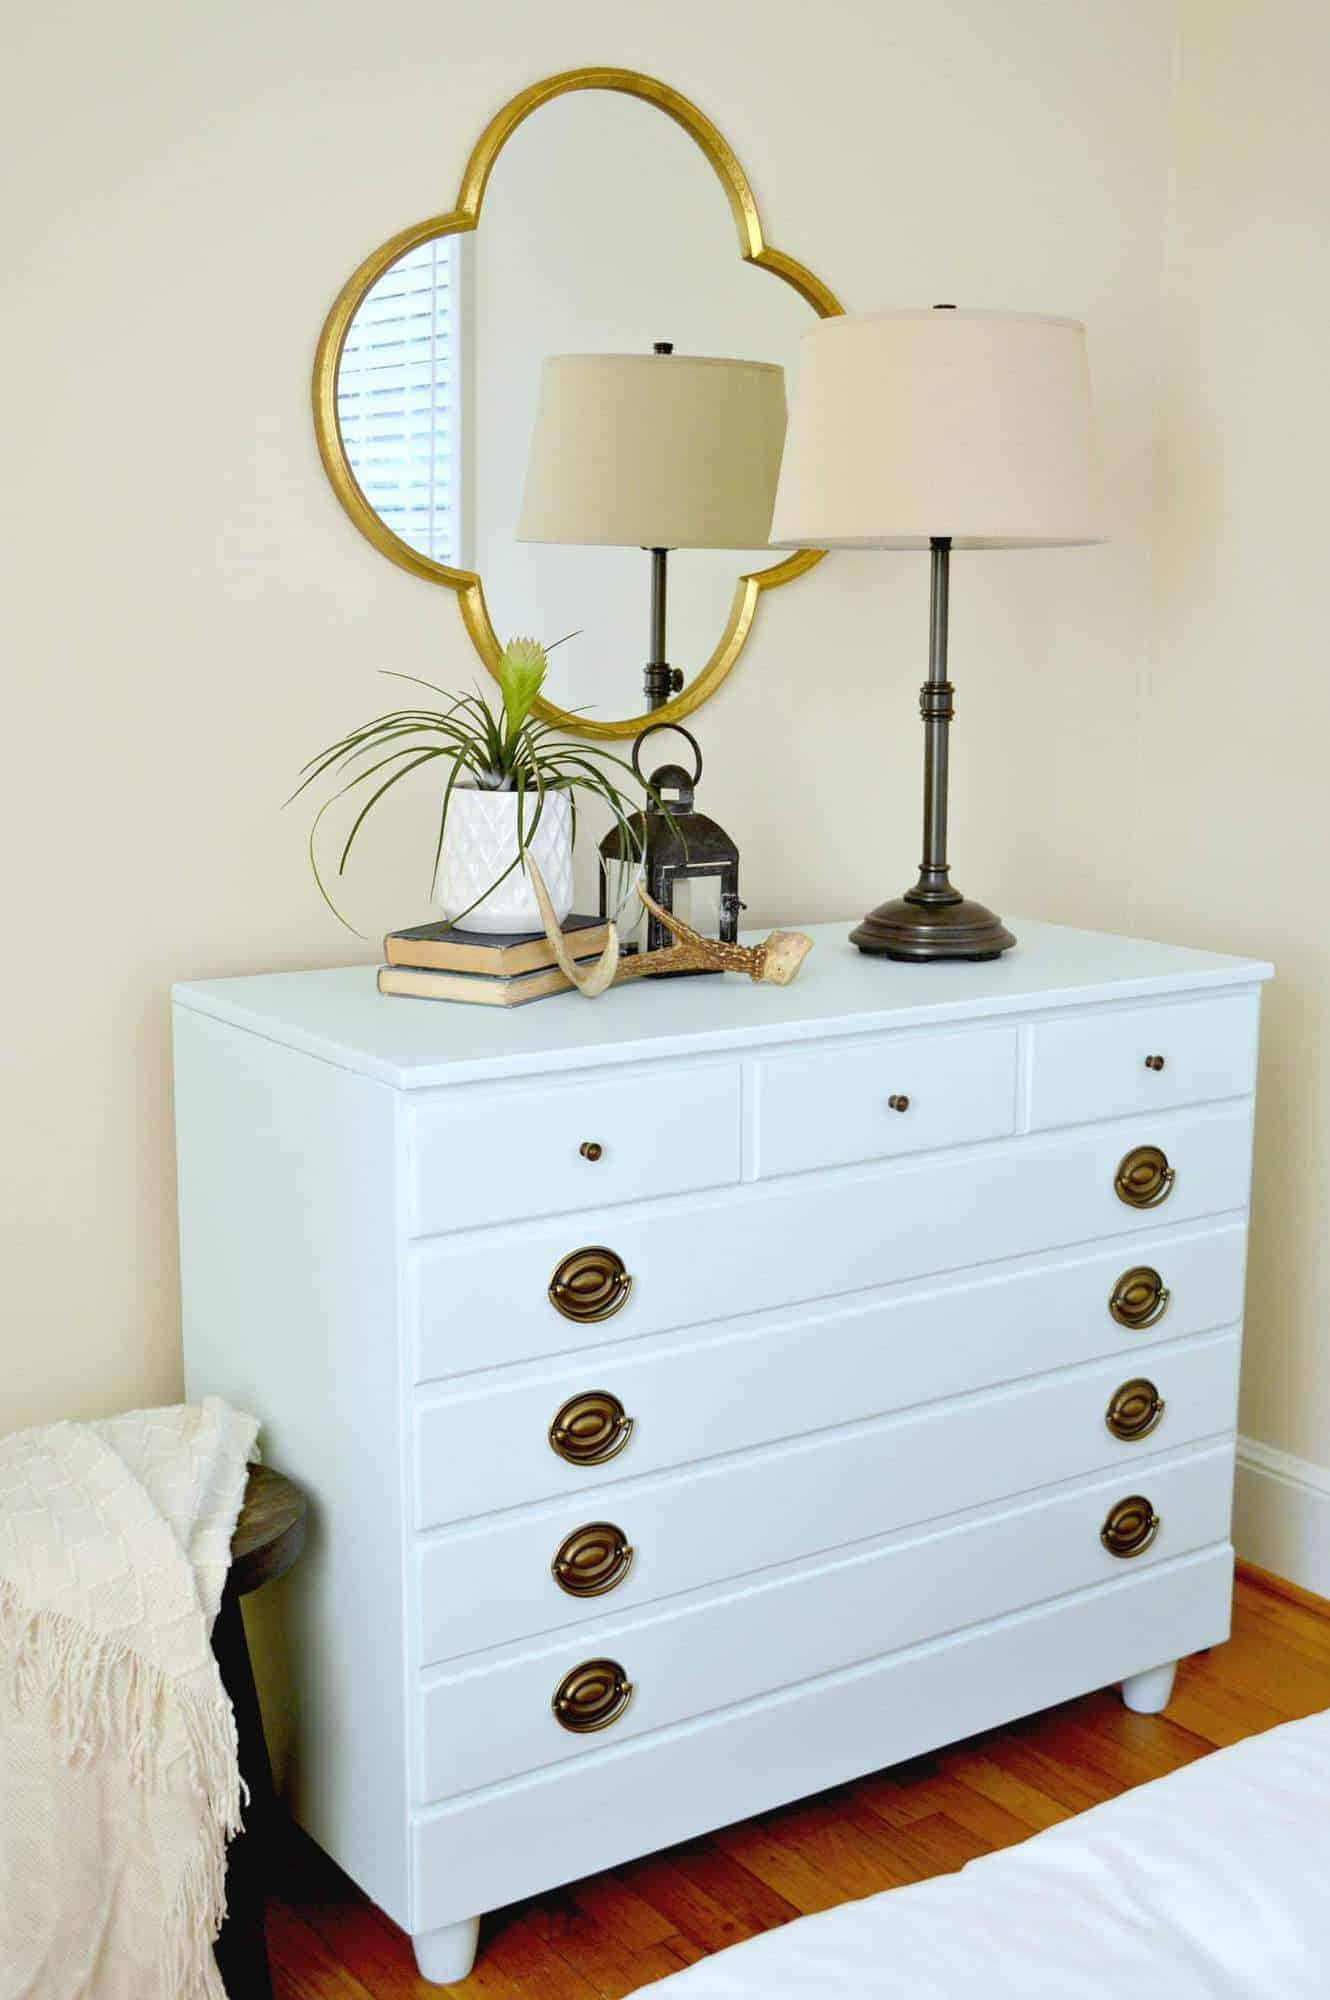 An easy DIY project taking a Goodwill dresser from drab to fab in one weekend with Behr paint. Chatfield Court